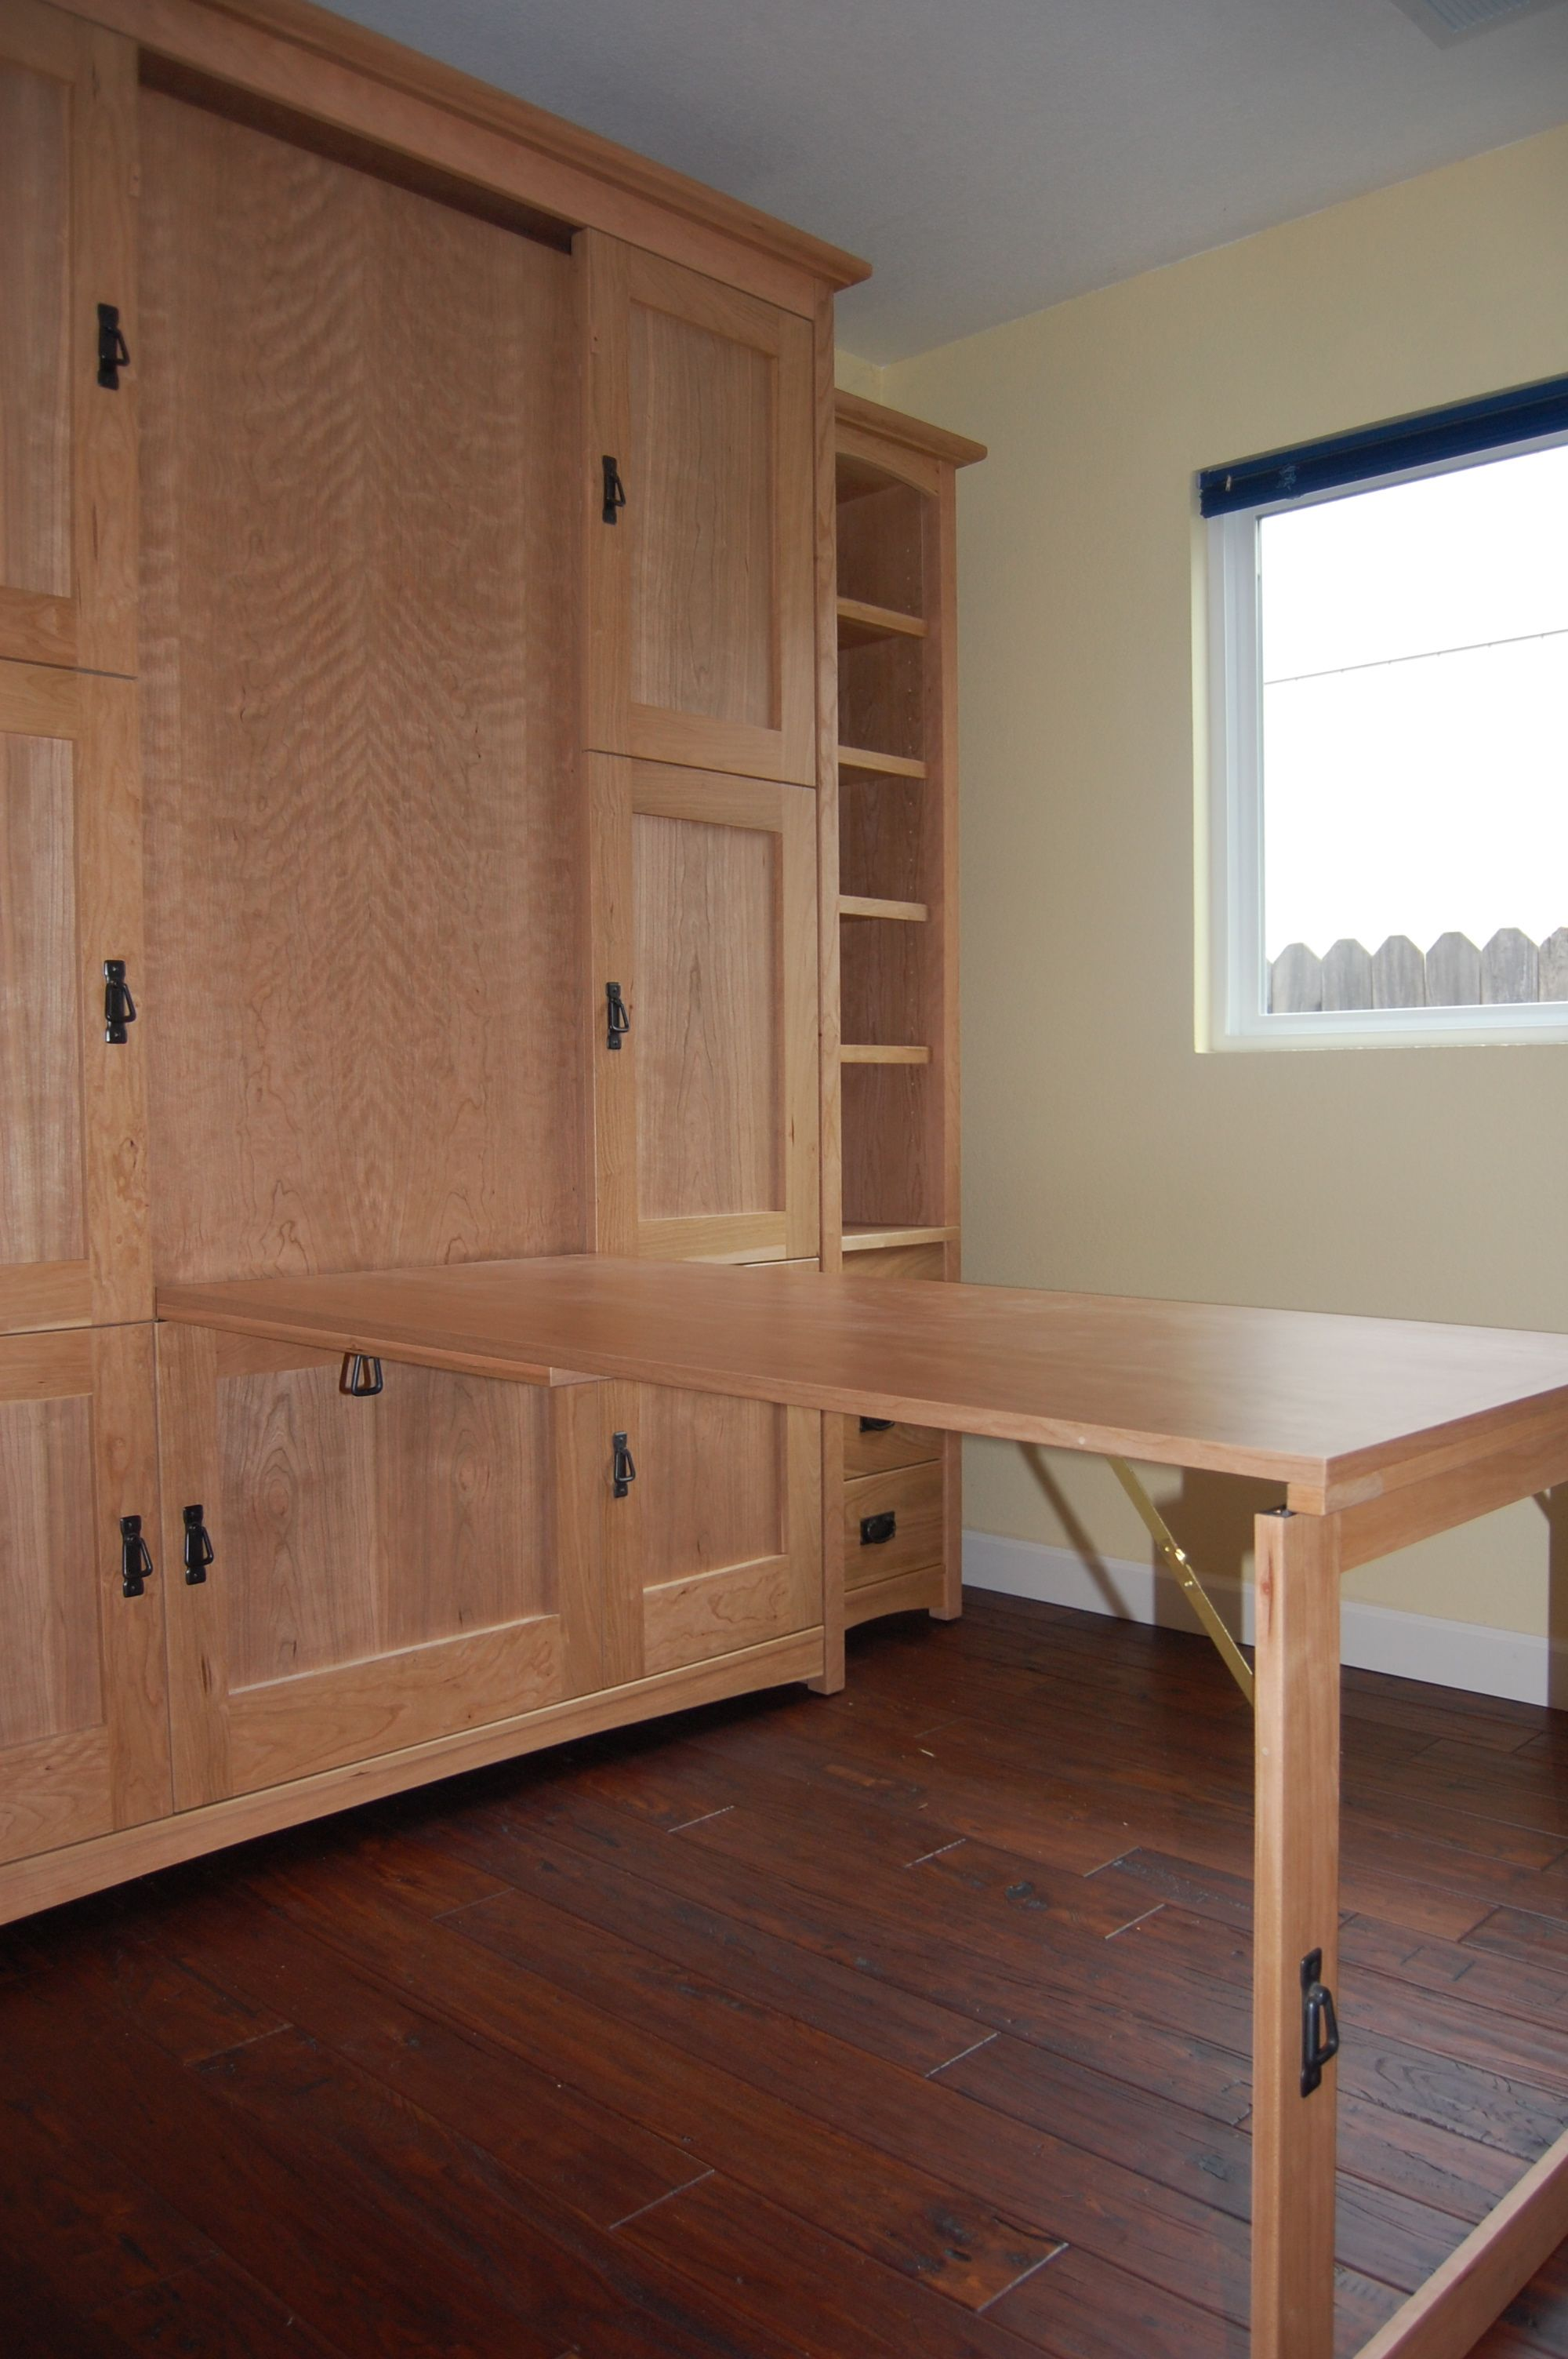 Wallbed Murphy Bed With Hidden Fold Down Table Or Desk Perfect For Home Office That Doubles As A Guest Room